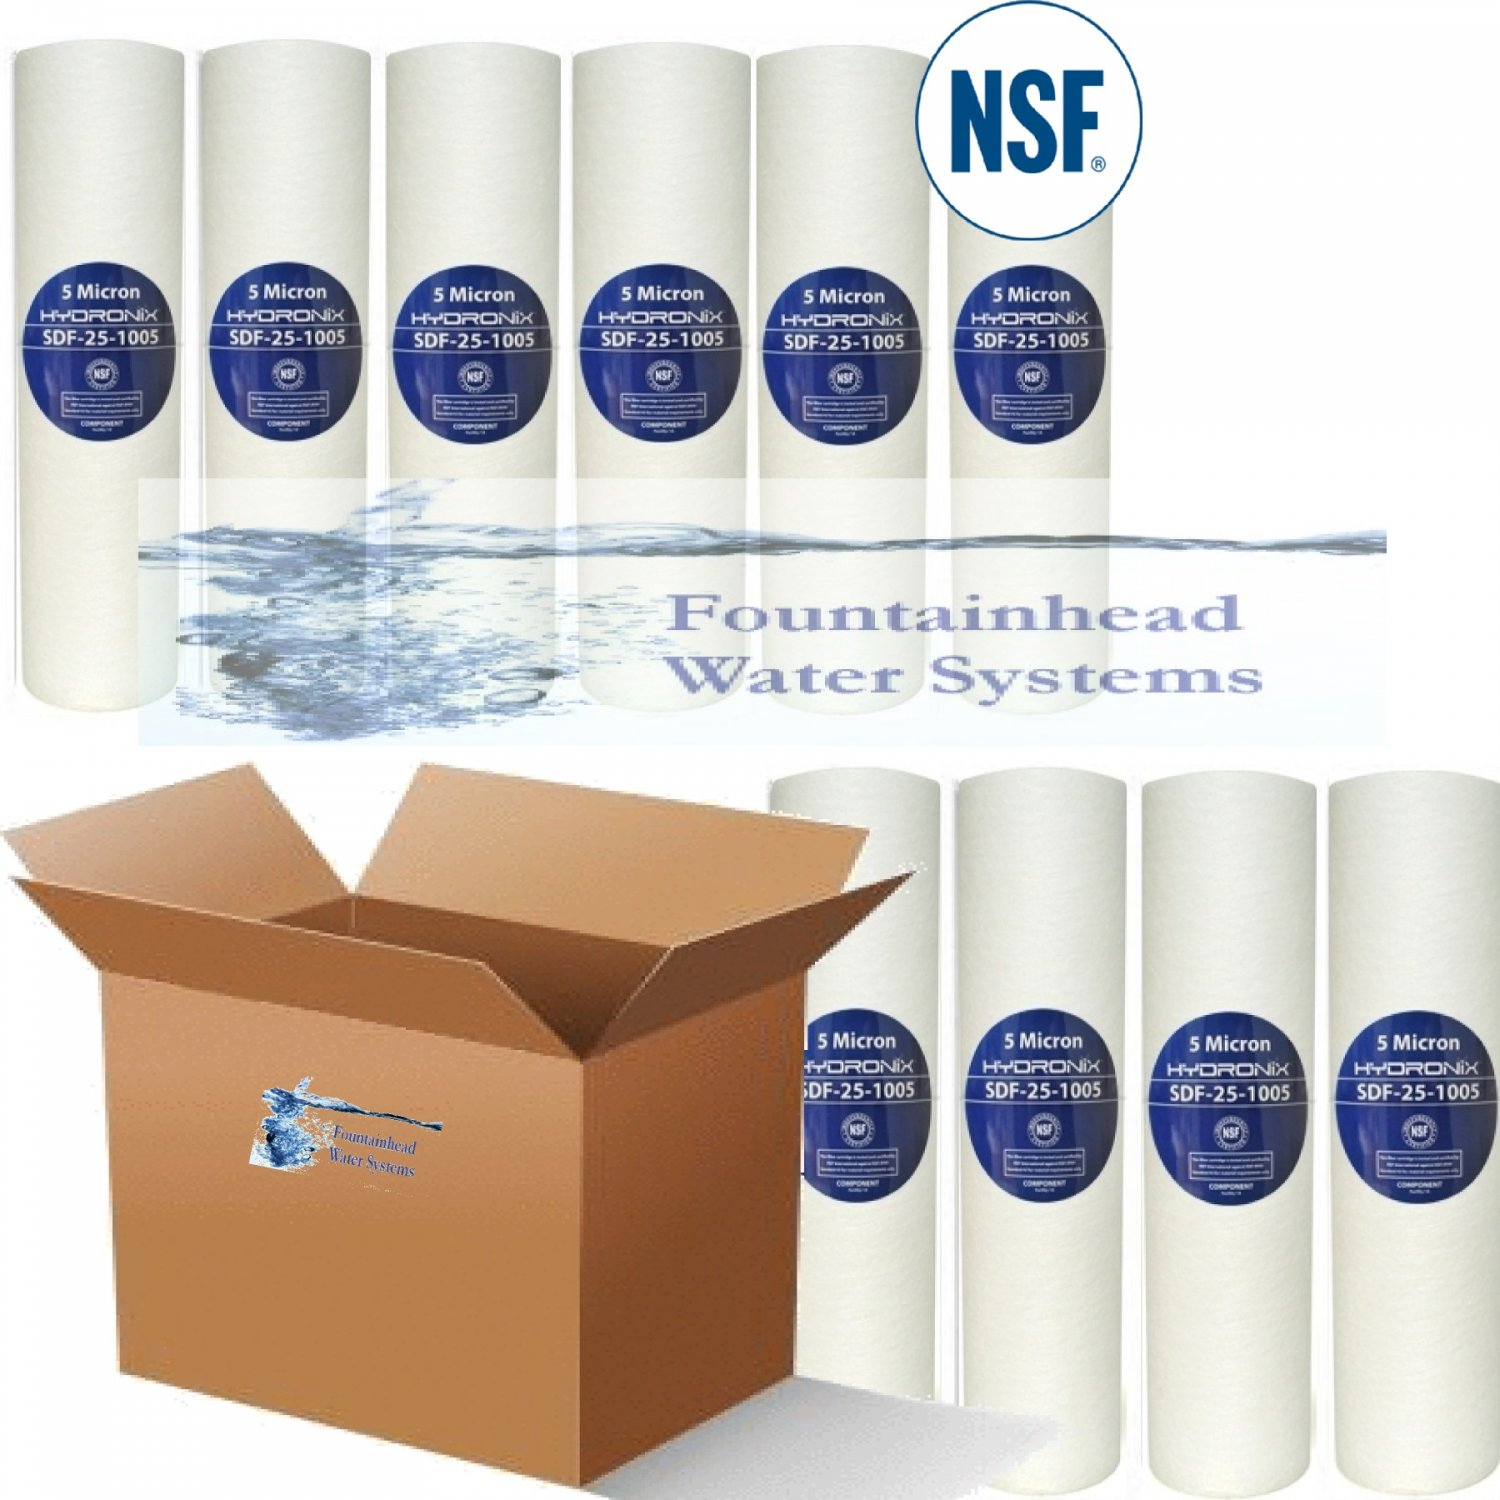 "10 NSF SEDIMENT FILTERS 10"" REMOVES SEDIMENT/RUST/SILT 5 MICRONS"